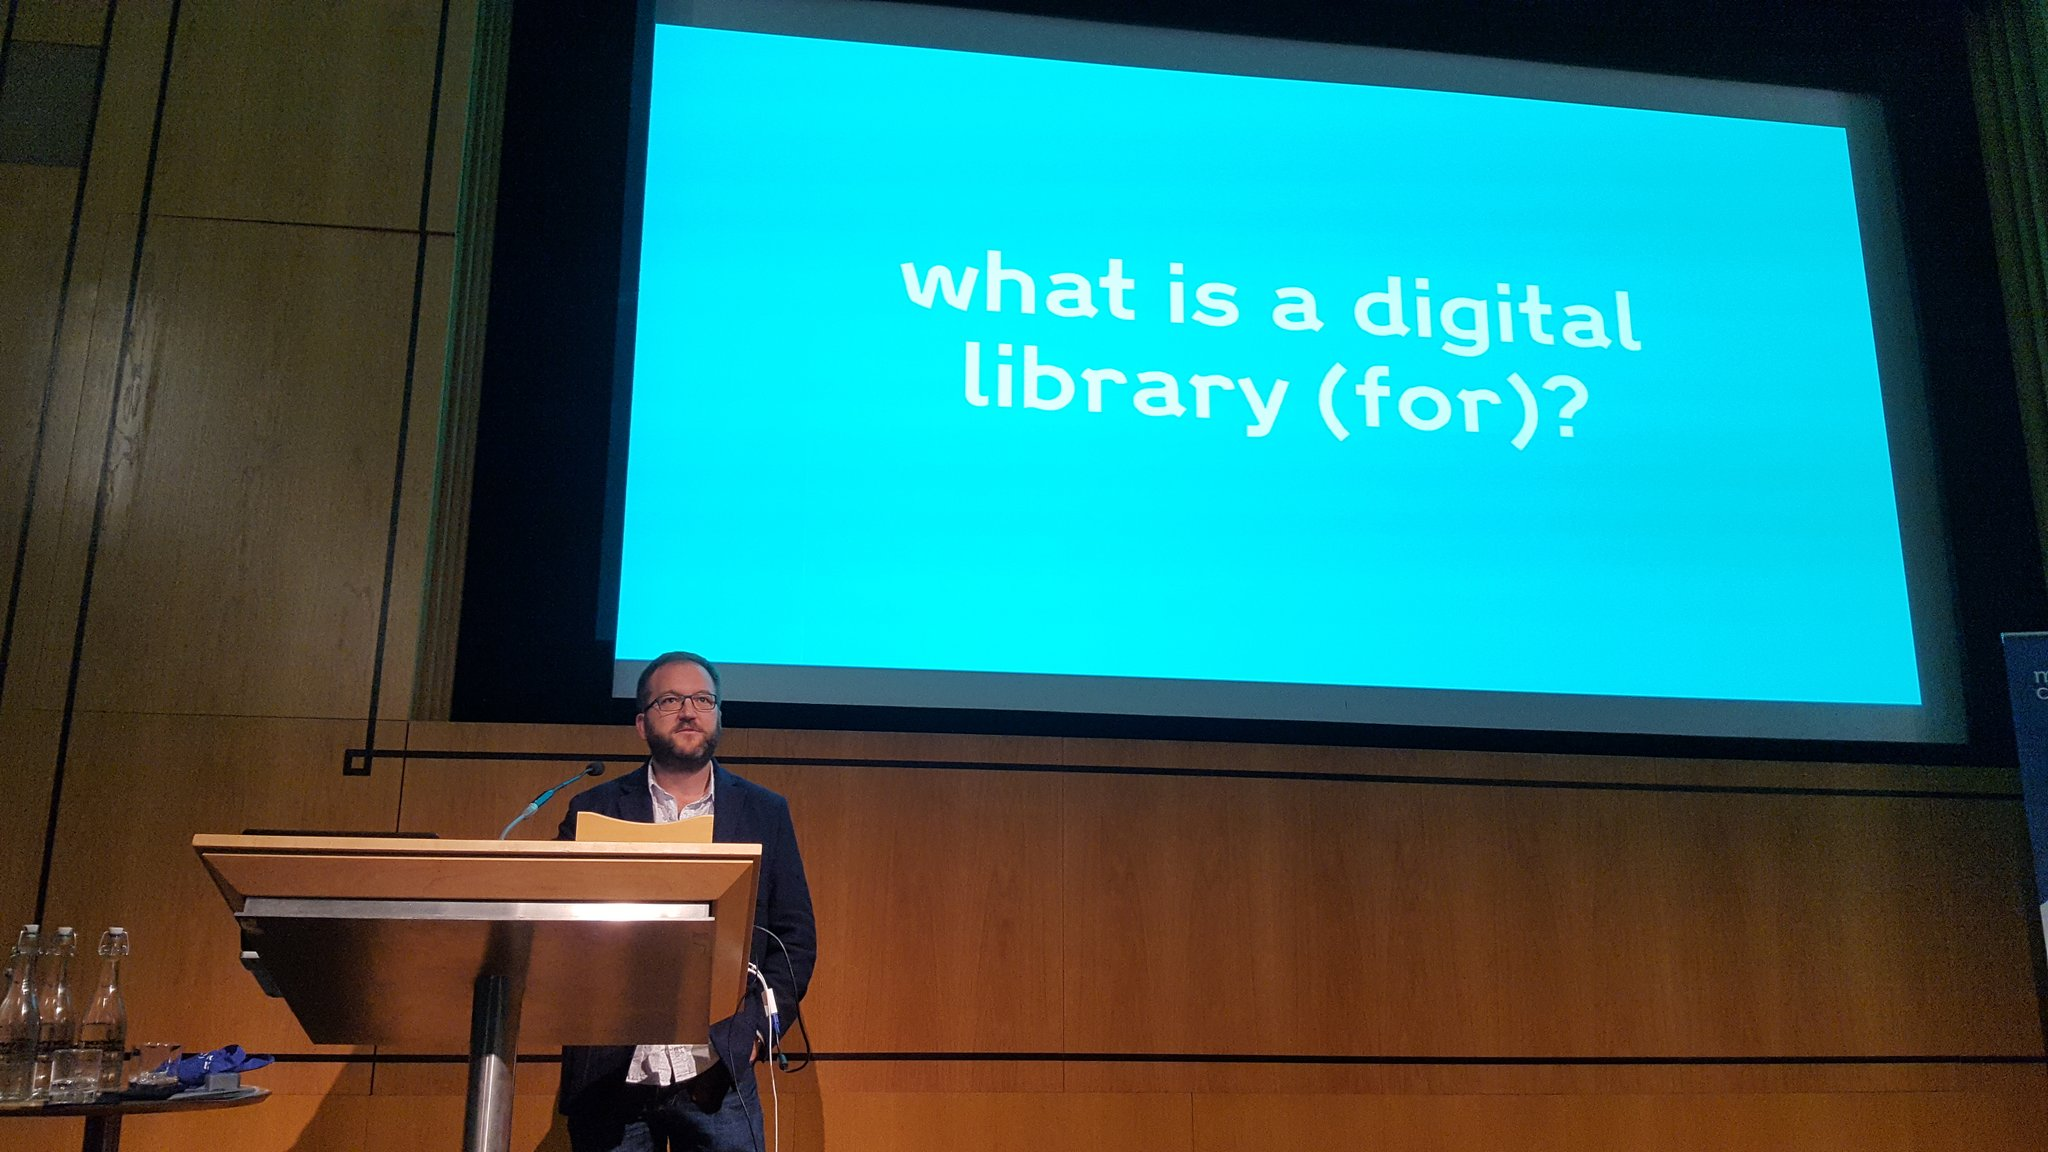 Musing what is a digital library w/ @derivadow #musetech16 https://t.co/V60GnZrrMM